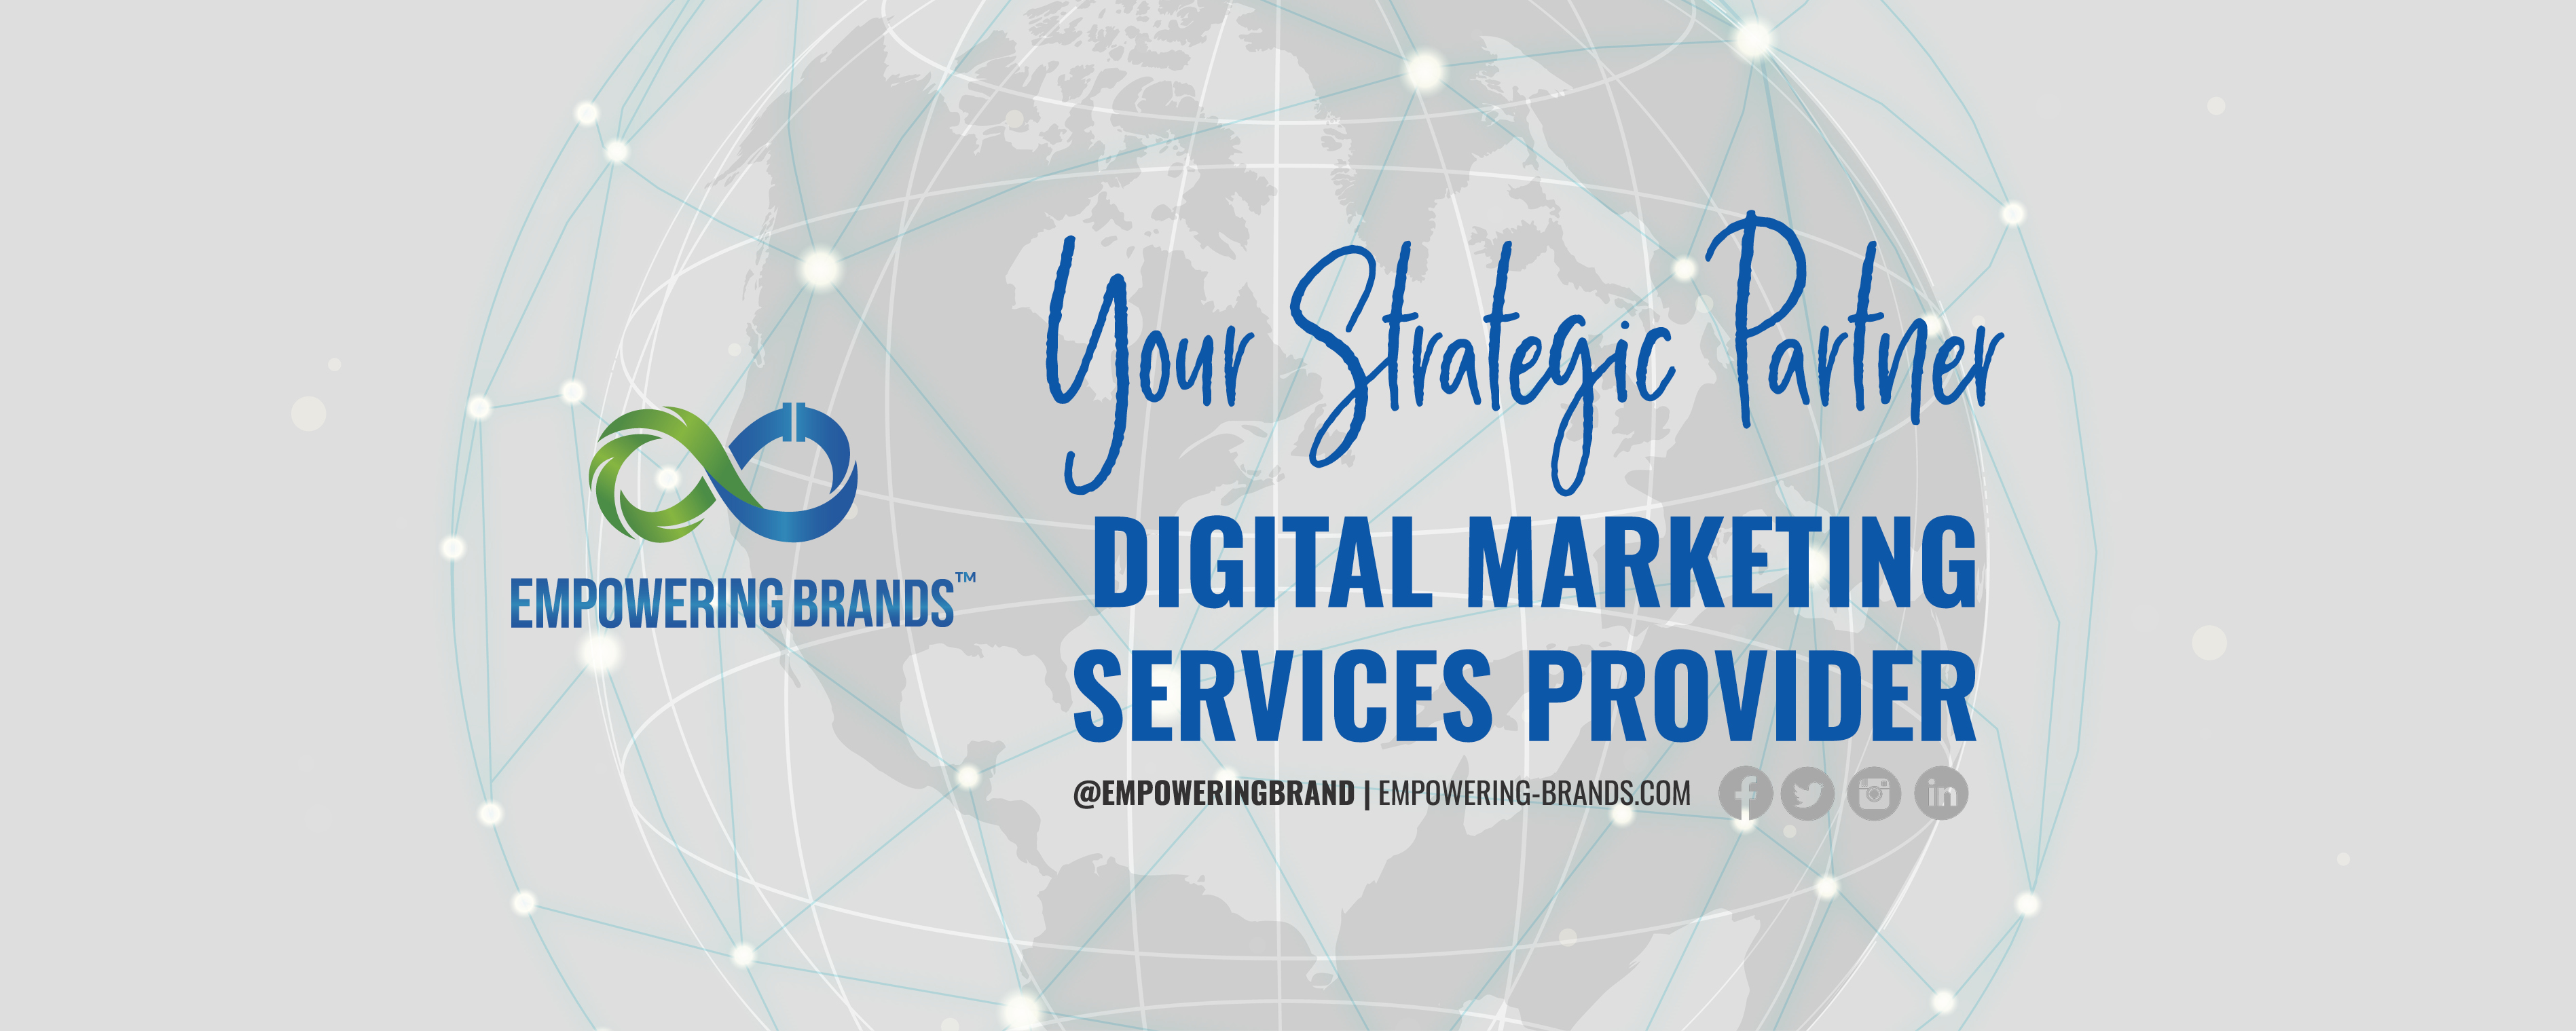 Empowering Brands, Your Strategic Partner, Digital Marketing Services